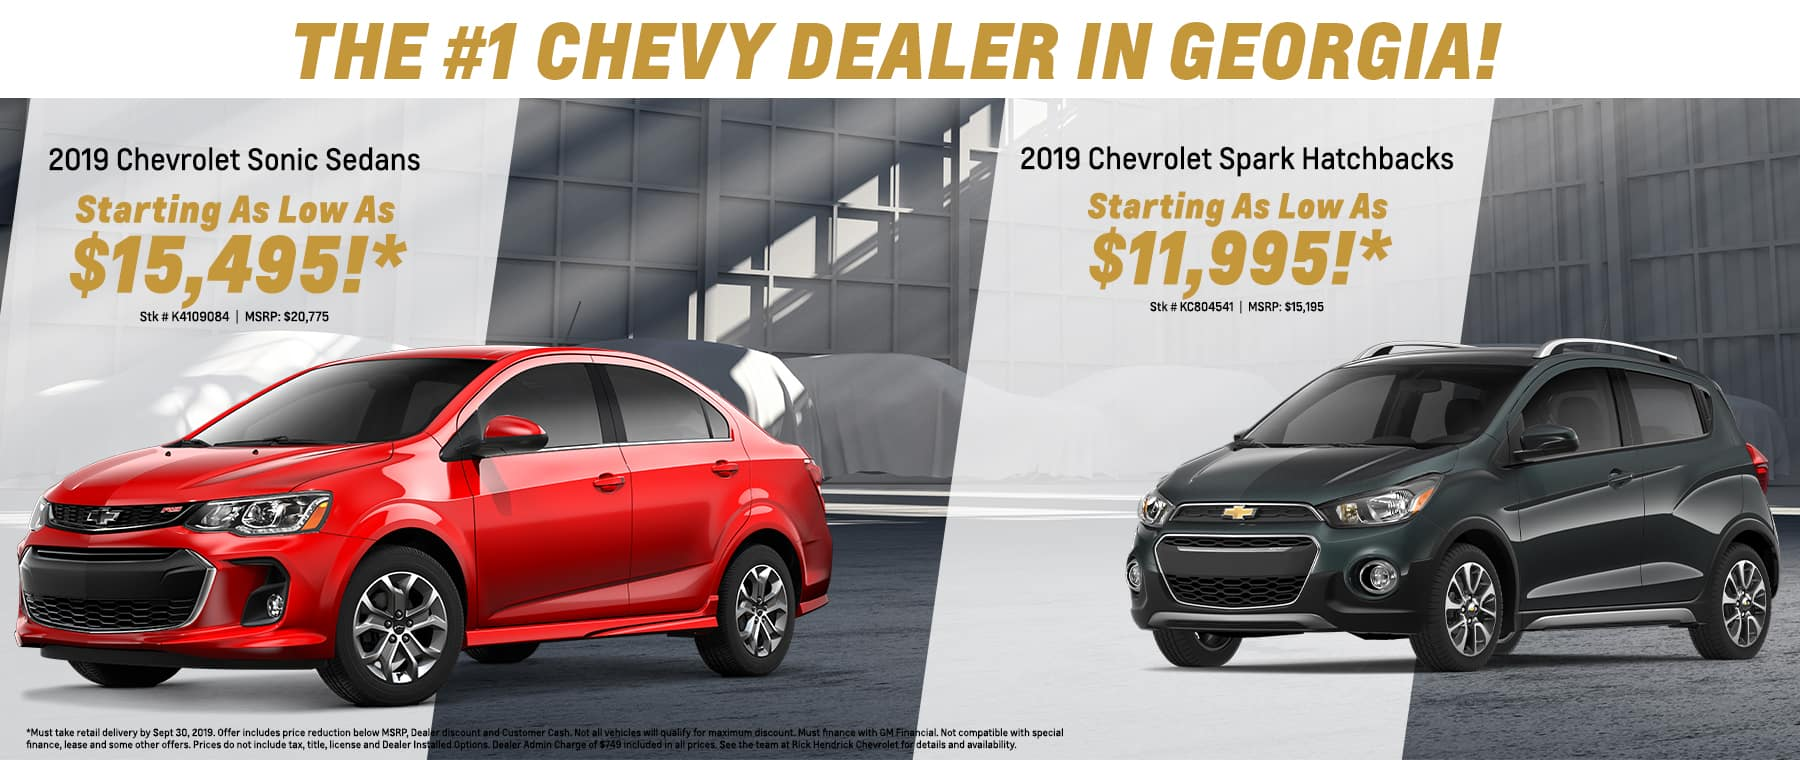 Rick Hendrick Chevrolet Buford Chevrolet Dealer Serving